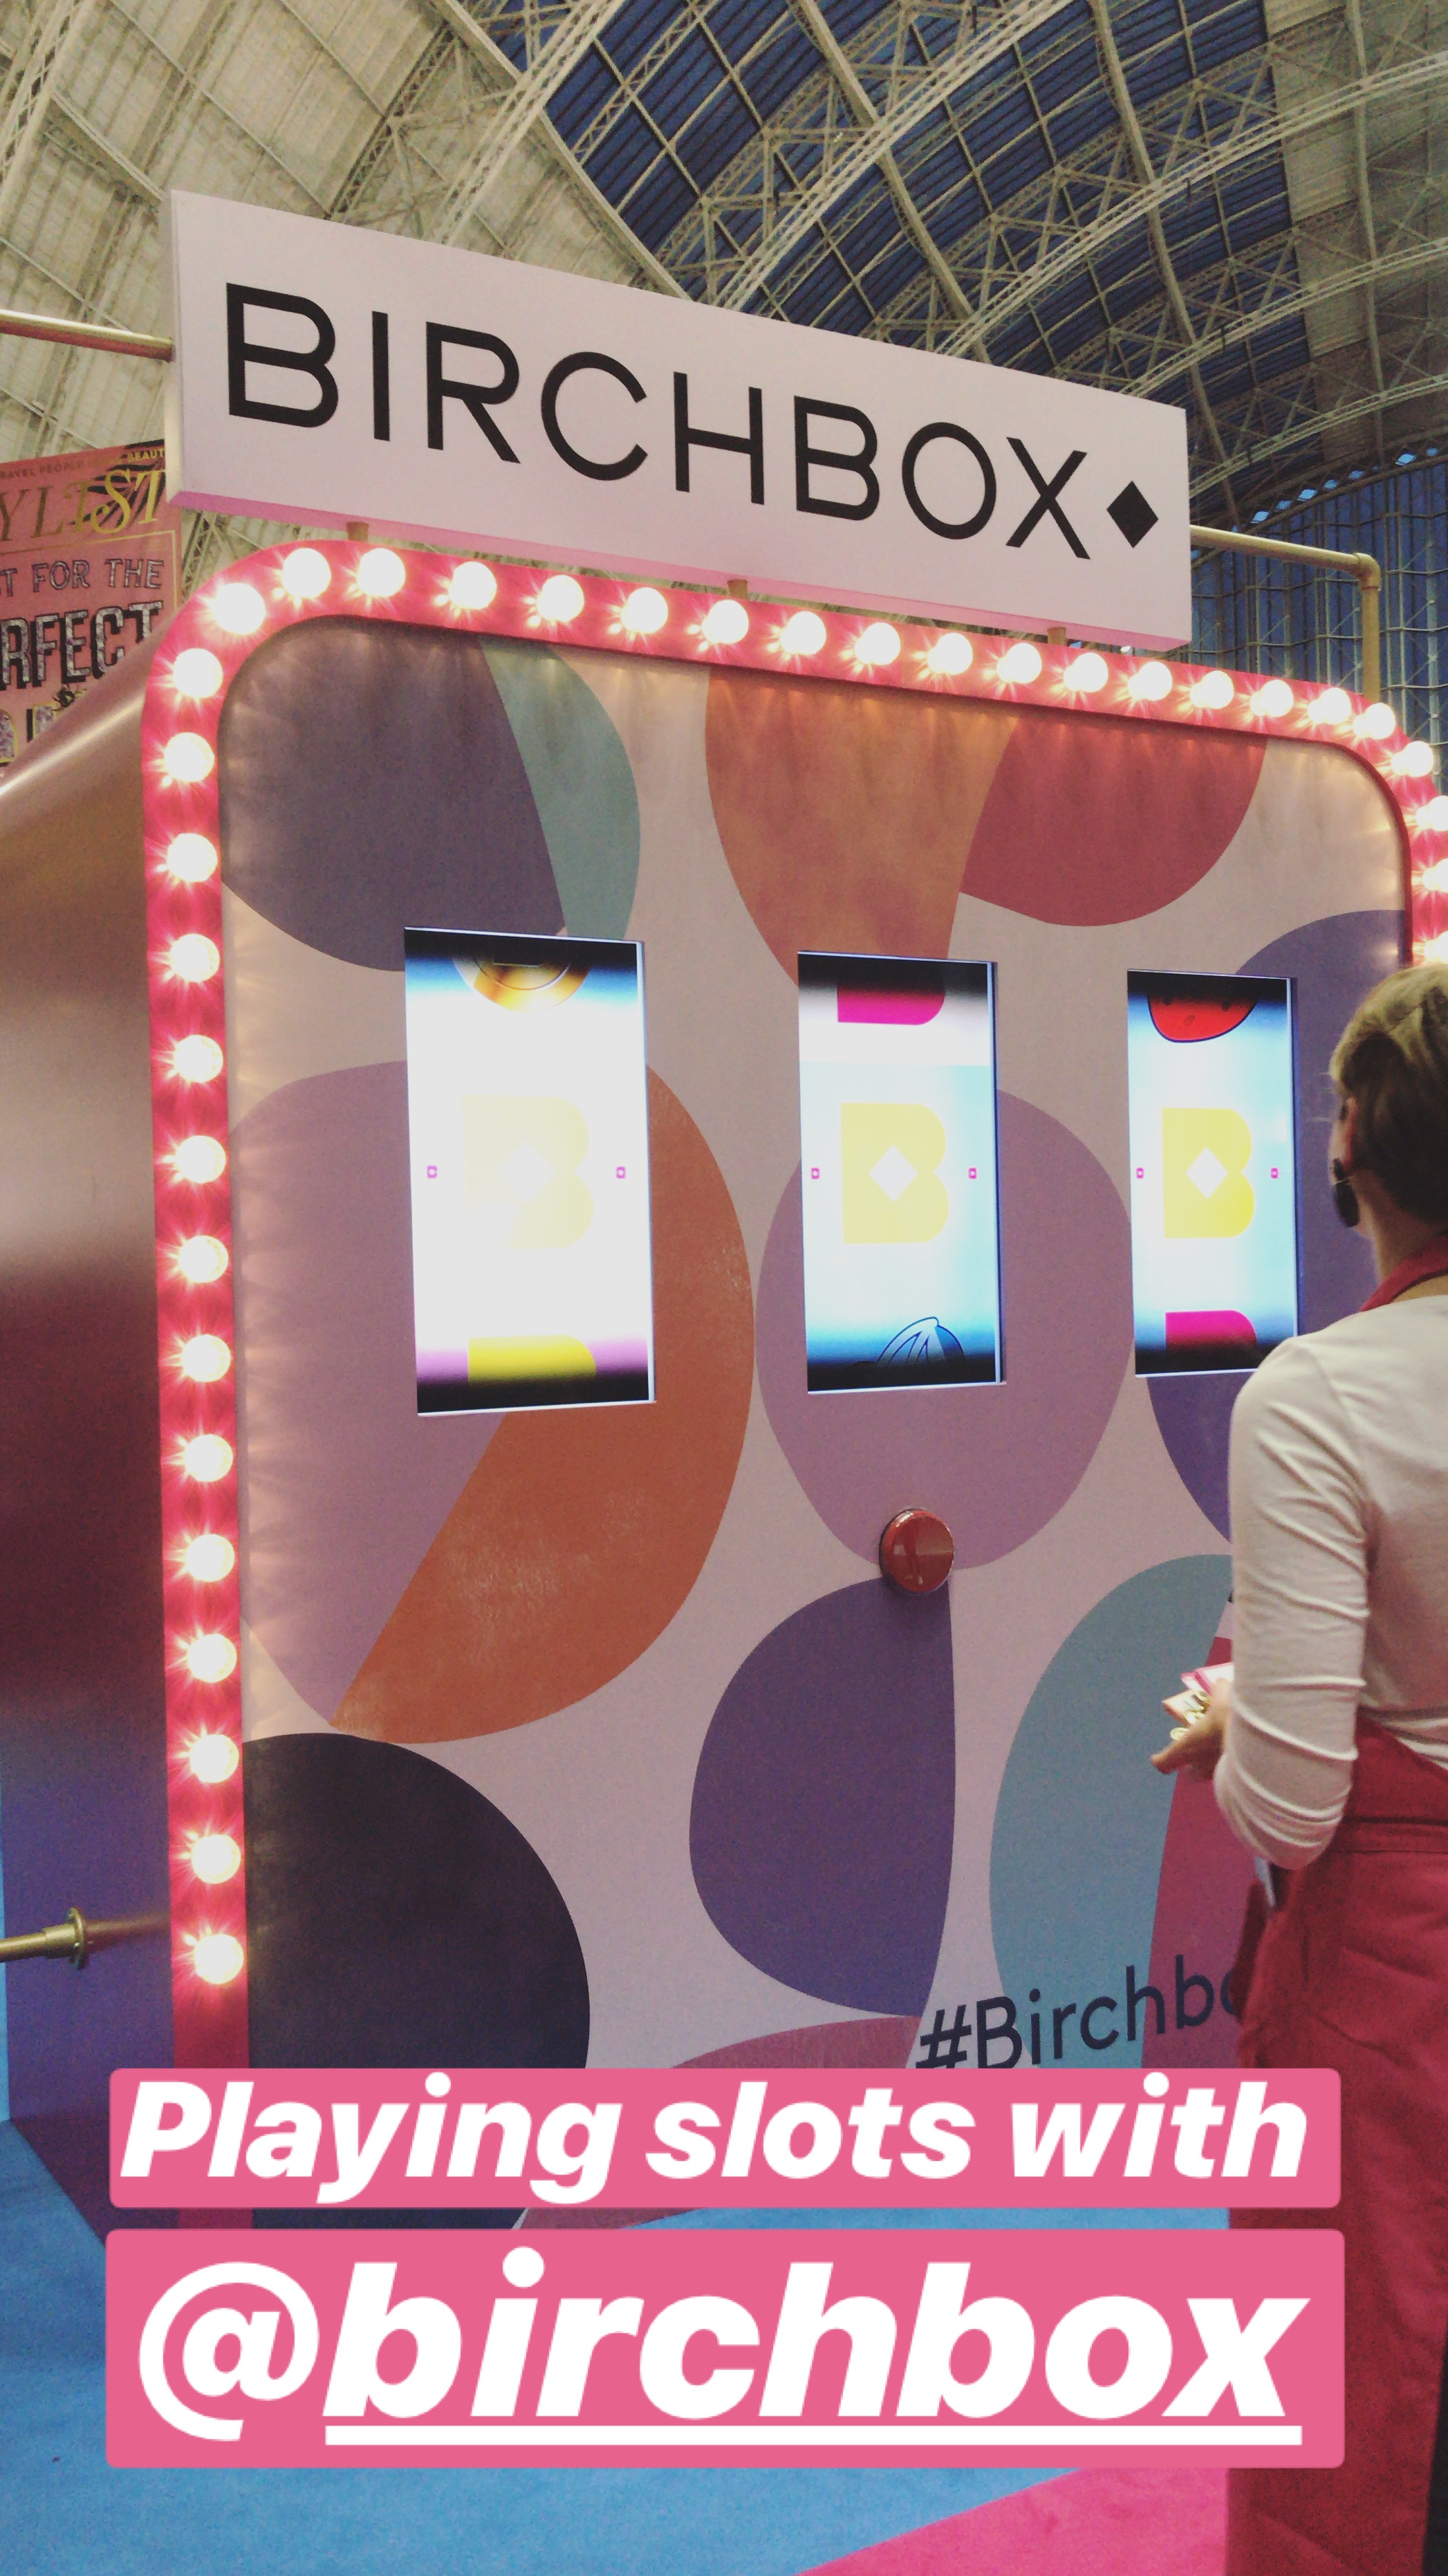 Birchbox were on site with their interactive slots game